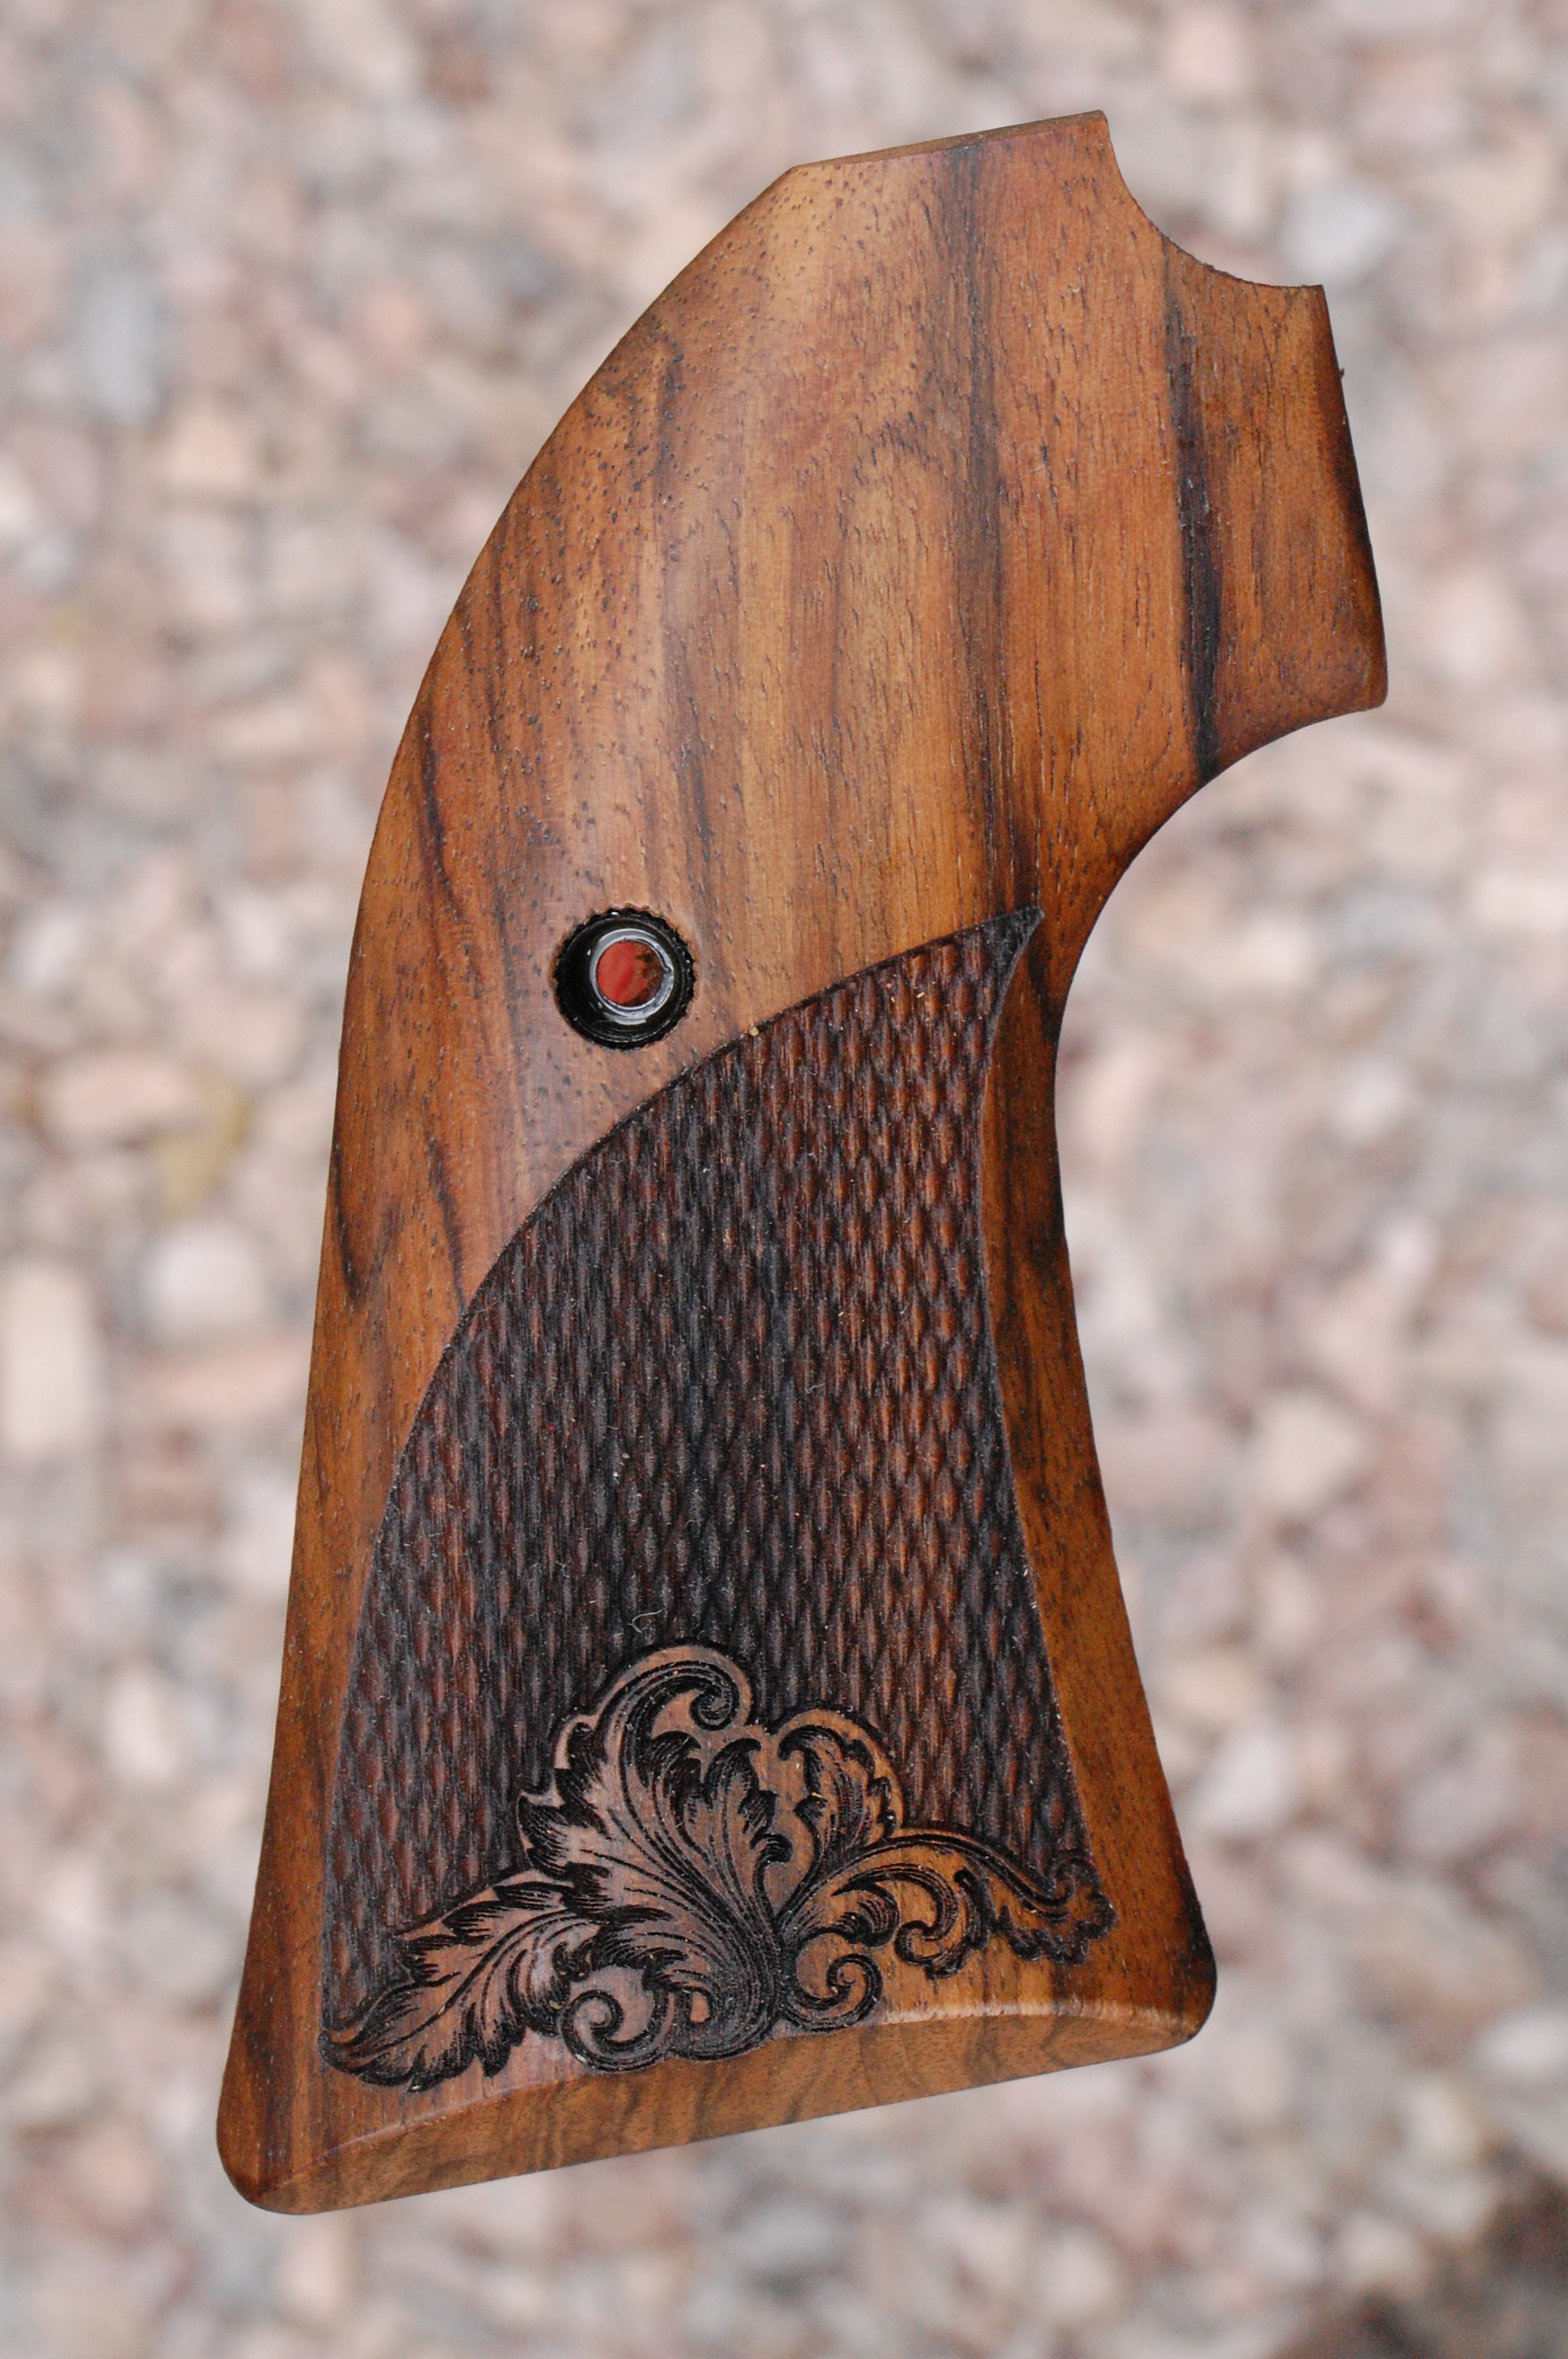 RUGER Bisley Vaquero grips (checkered) - full size